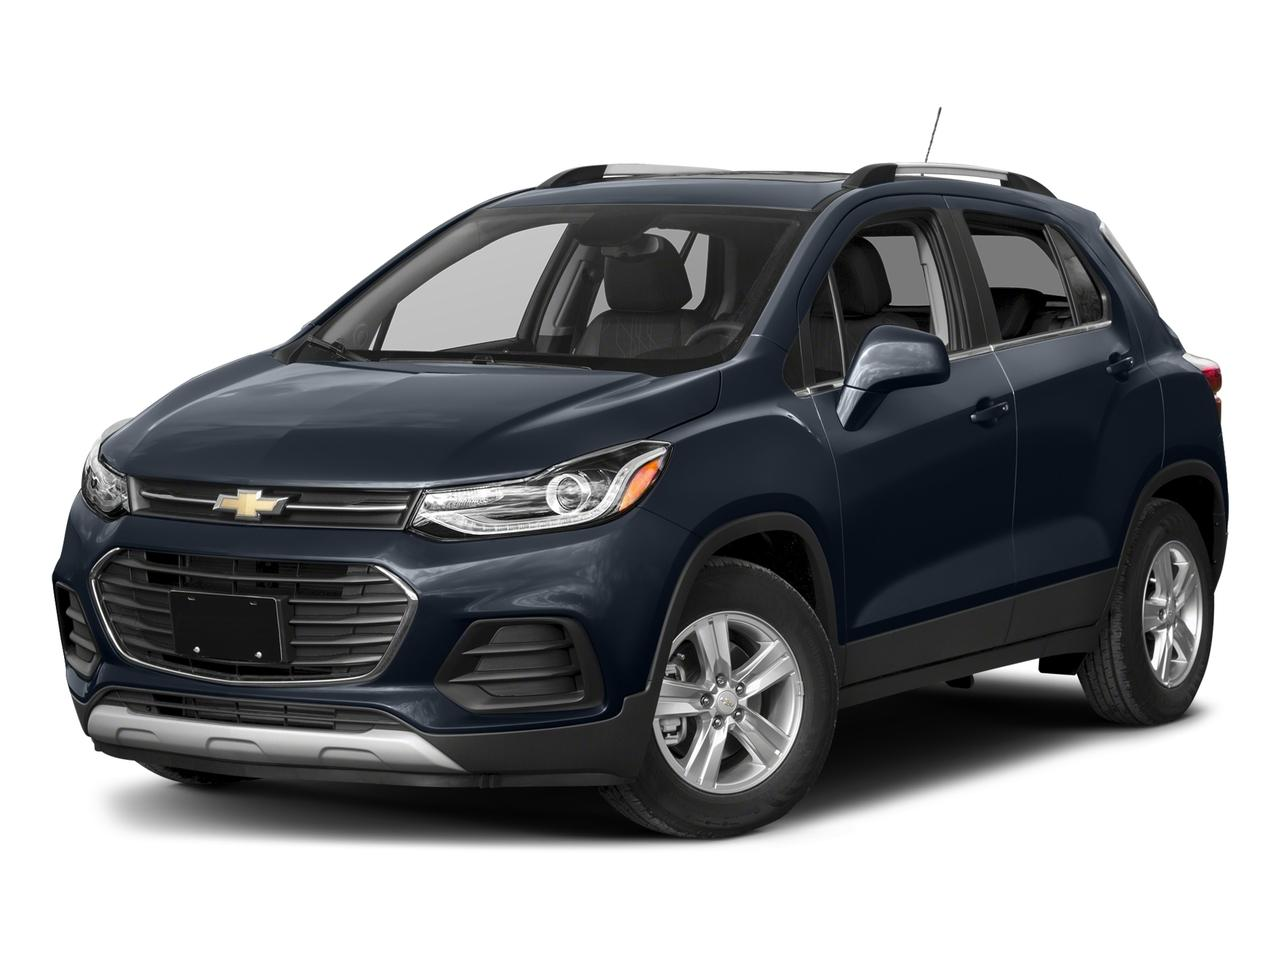 2018 Chevrolet Trax Vehicle Photo in Willoughby Hills, OH 44092